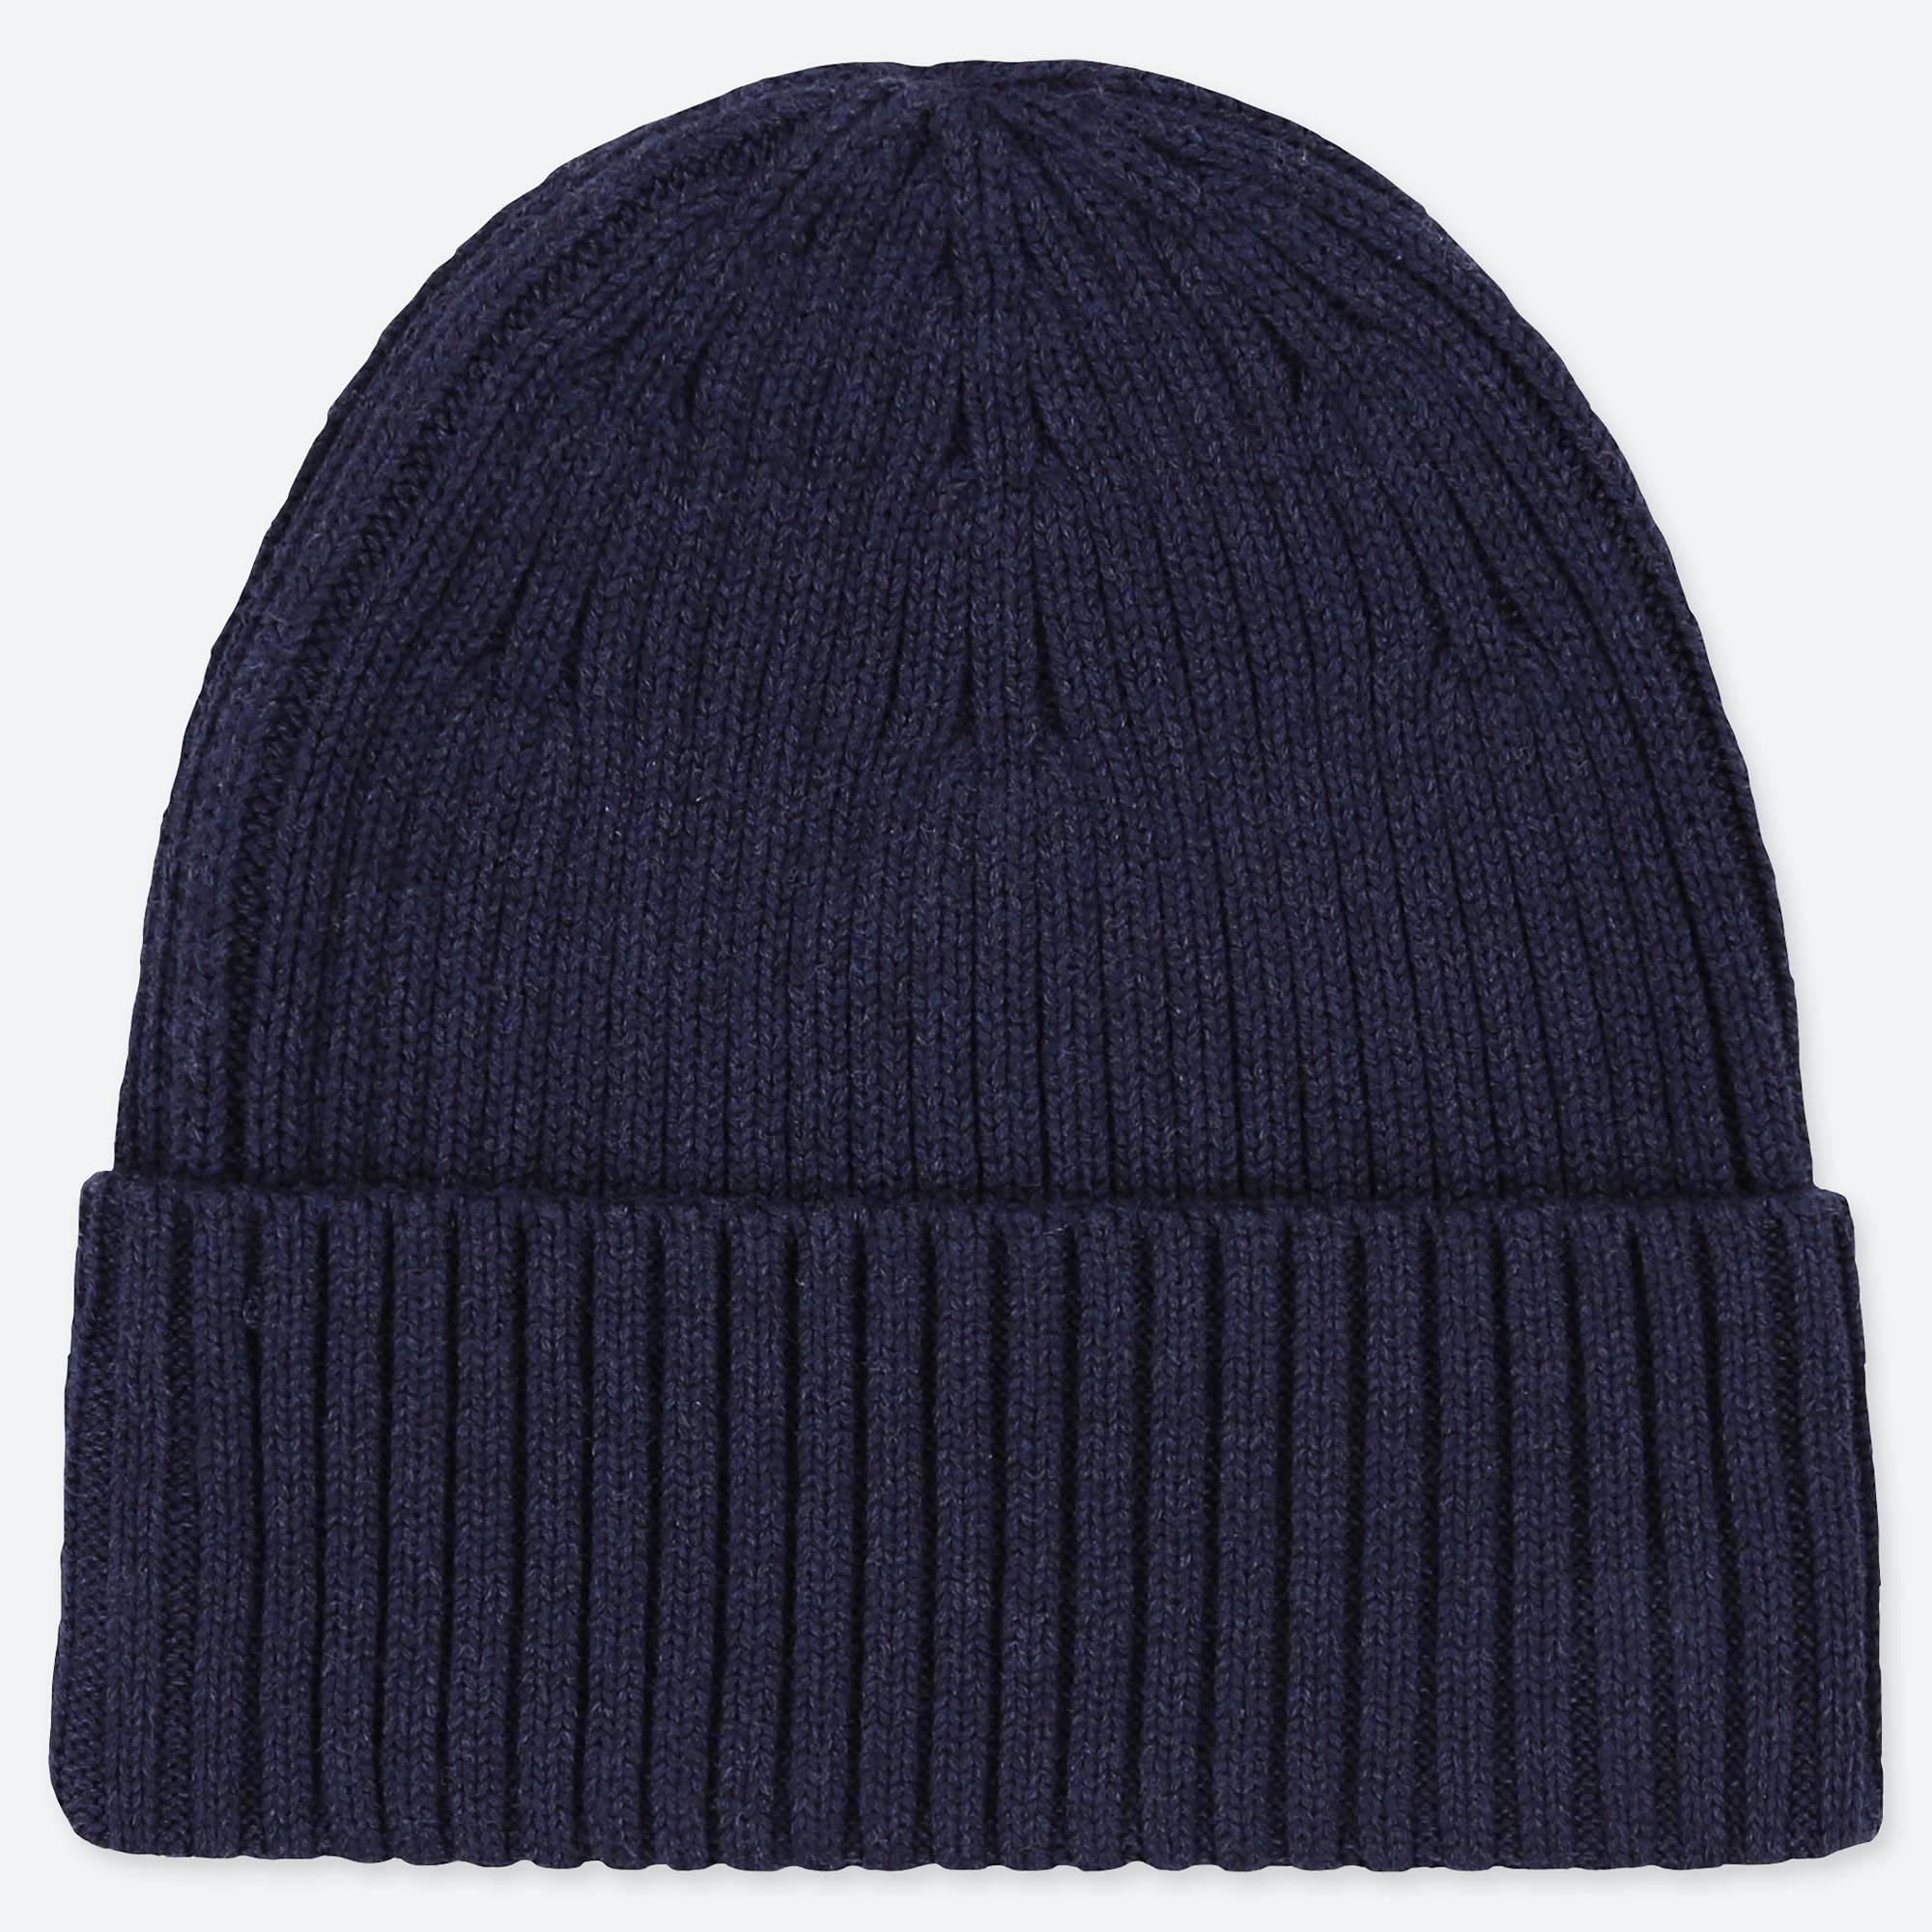 Lyst - Uniqlo Rib Beanie Hat in Blue for Men d92ce823a273